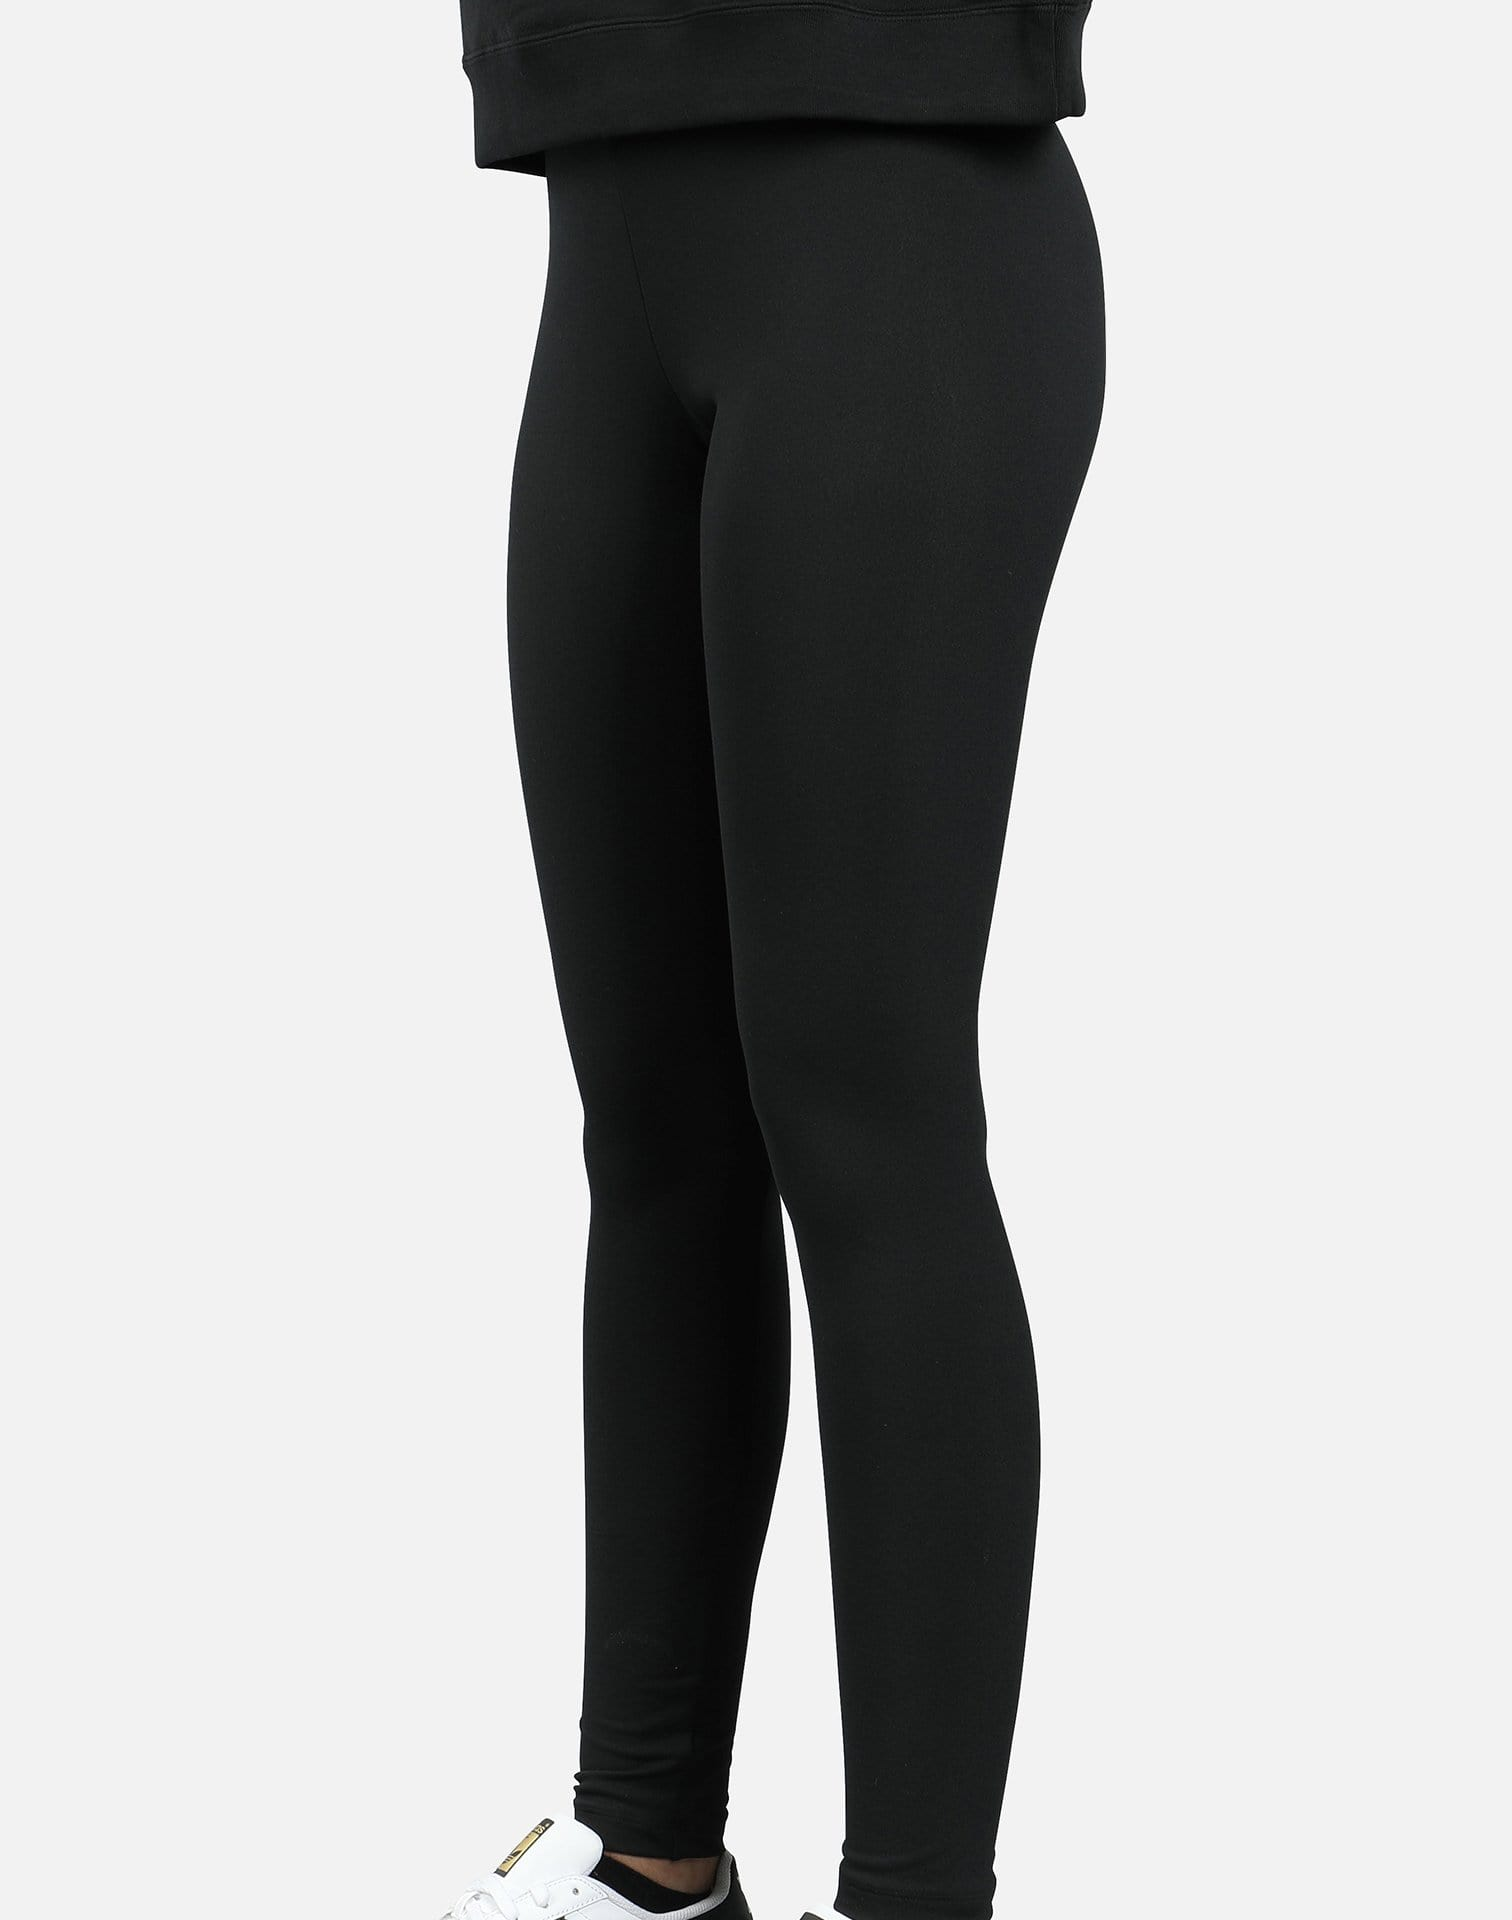 adidas Women's Trefoil Leggings